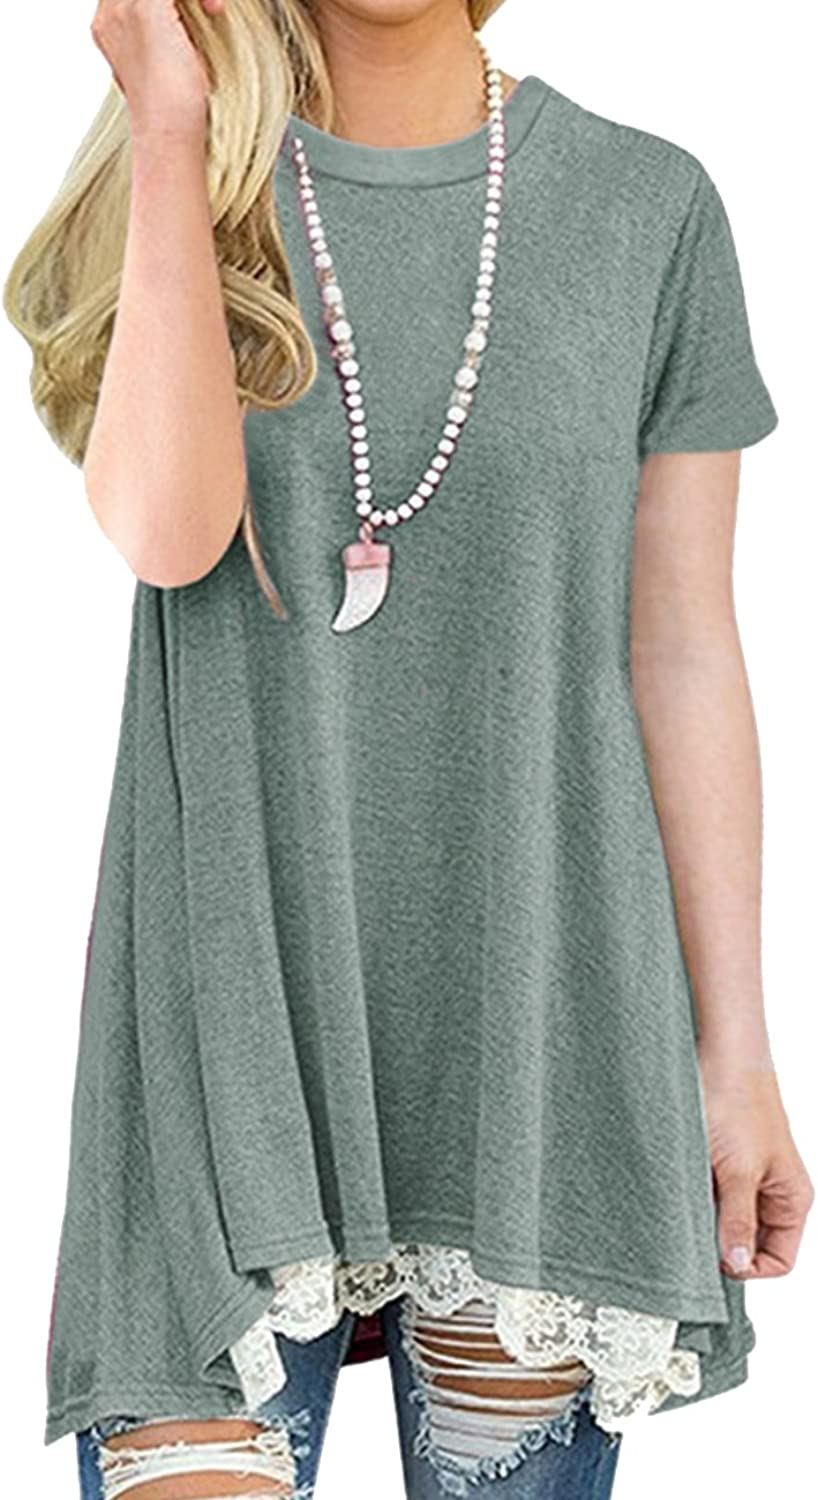 Defal Womens Summer Short Sleeve Lace Splicing Blouse High Low Hem Casual Tunic Top